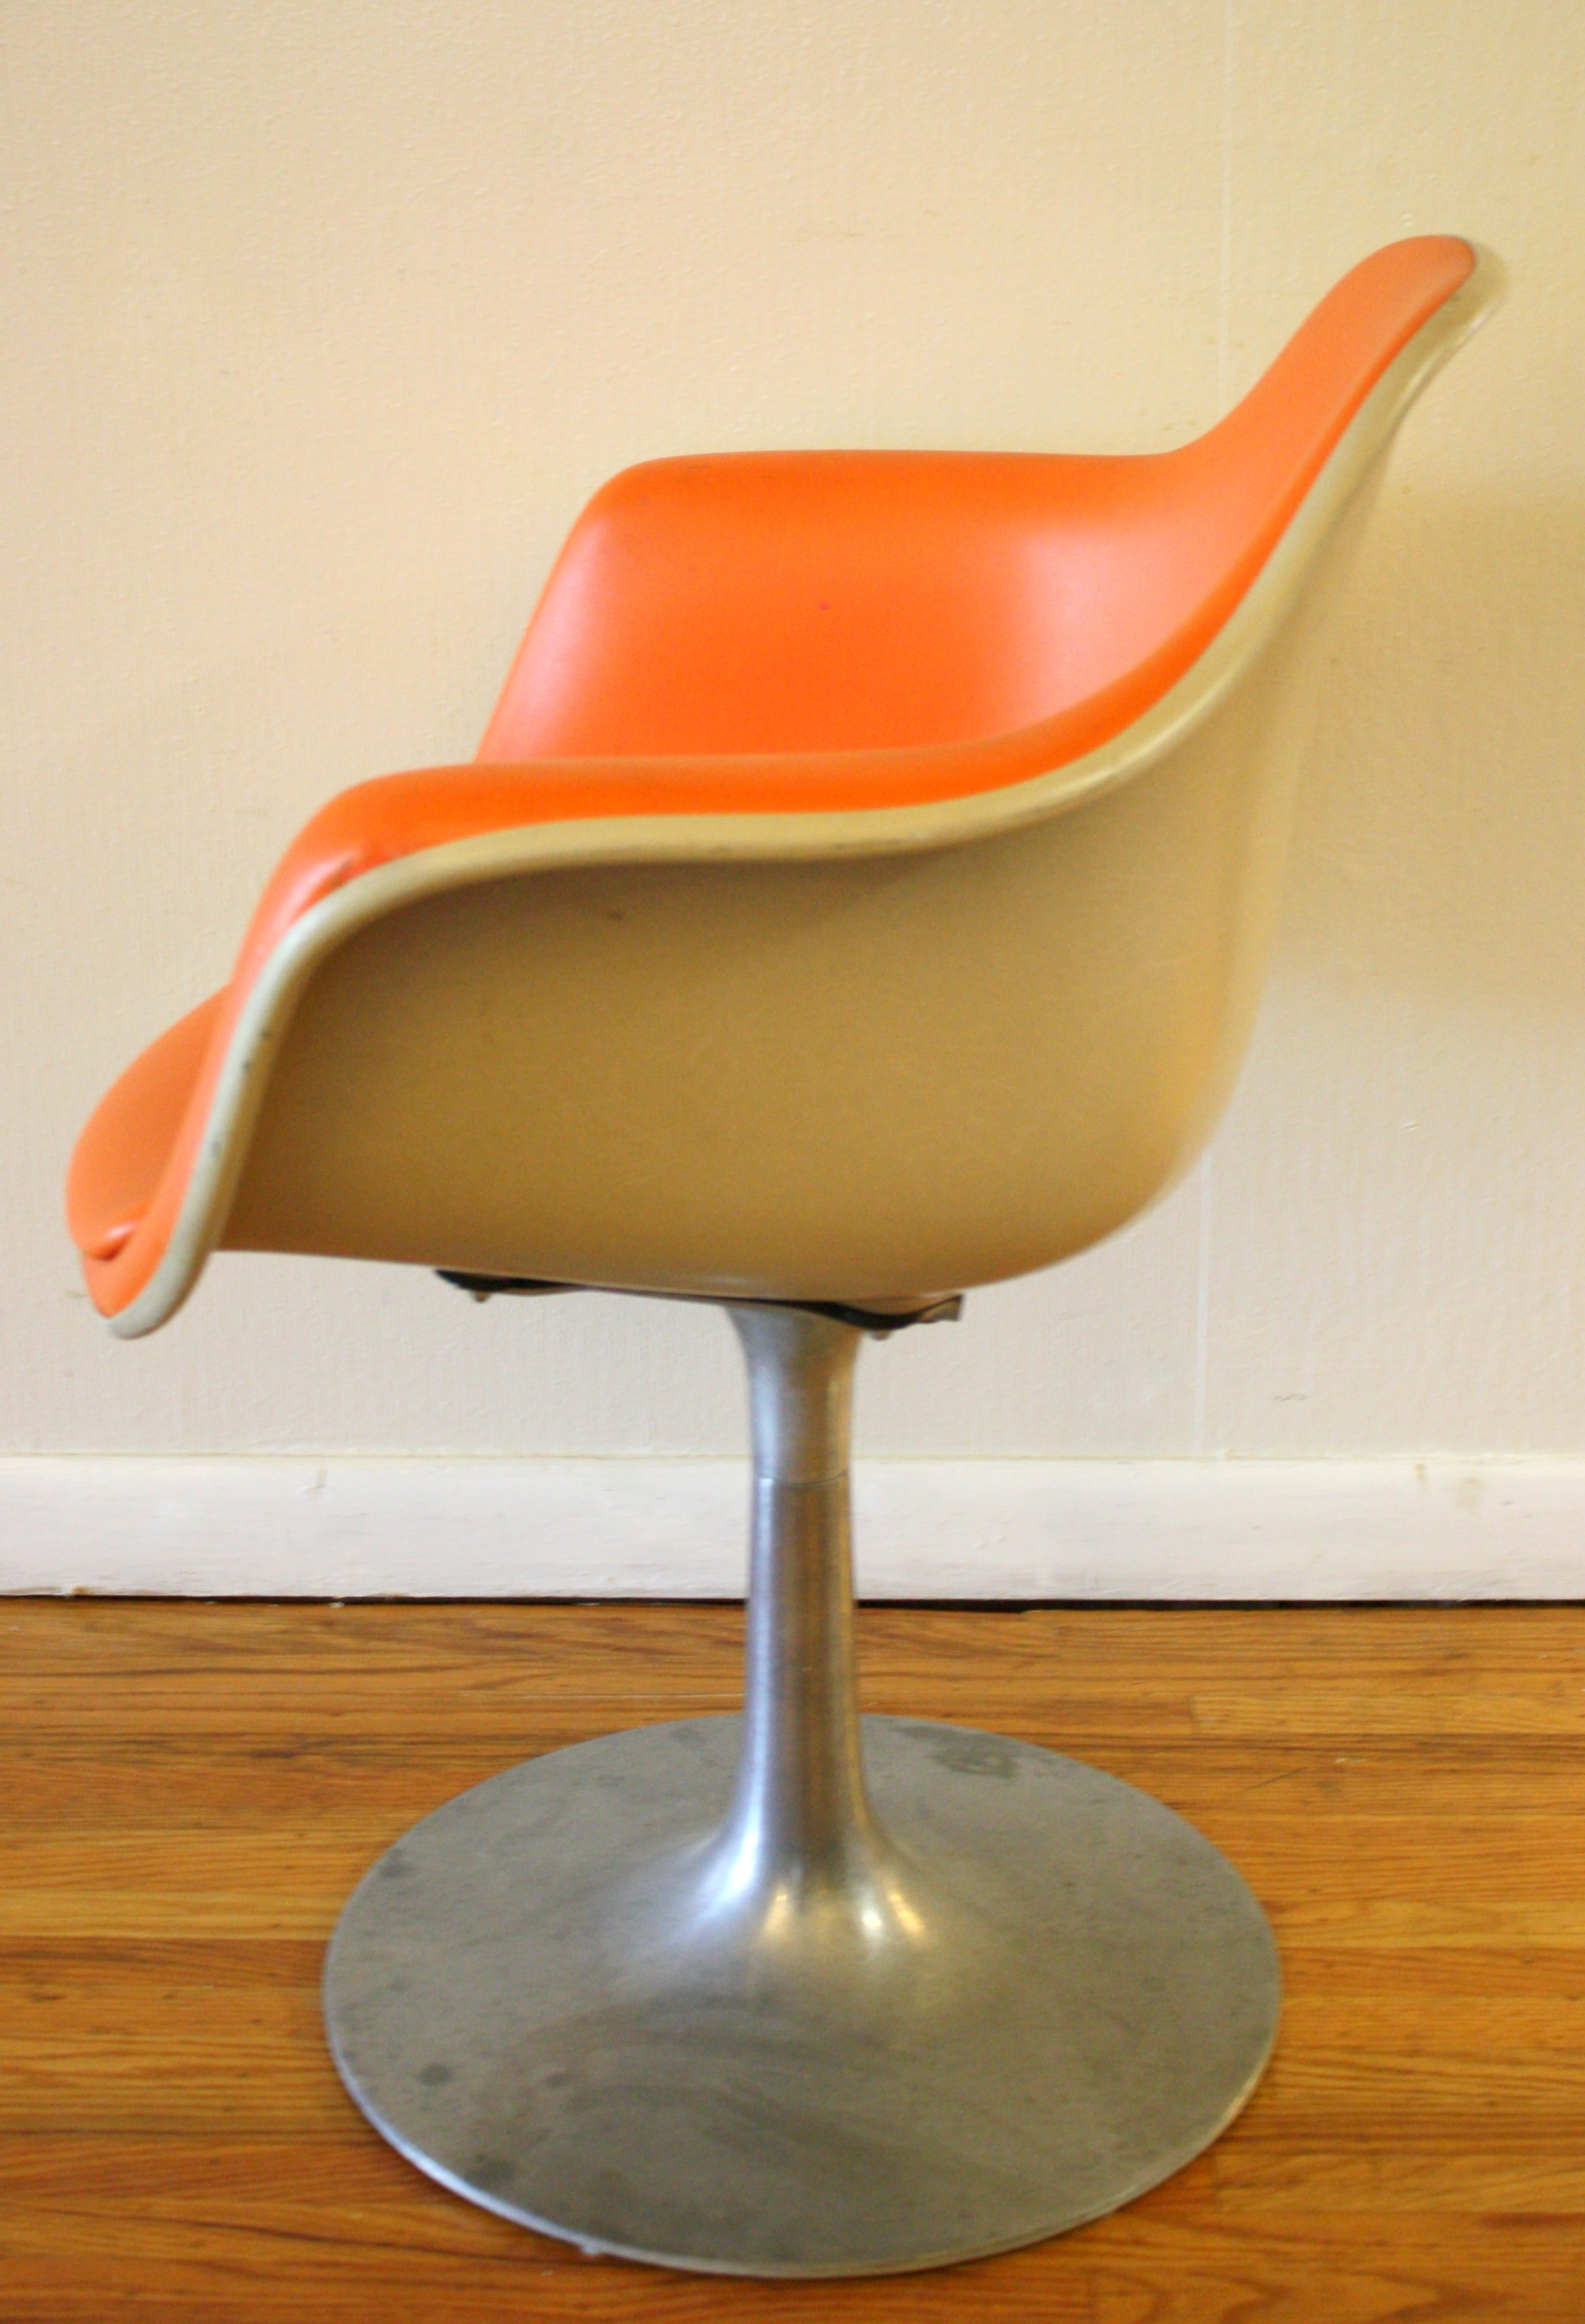 krueger folding chairs gerrit thomas rietveld chair mid century modern shell with retro base by